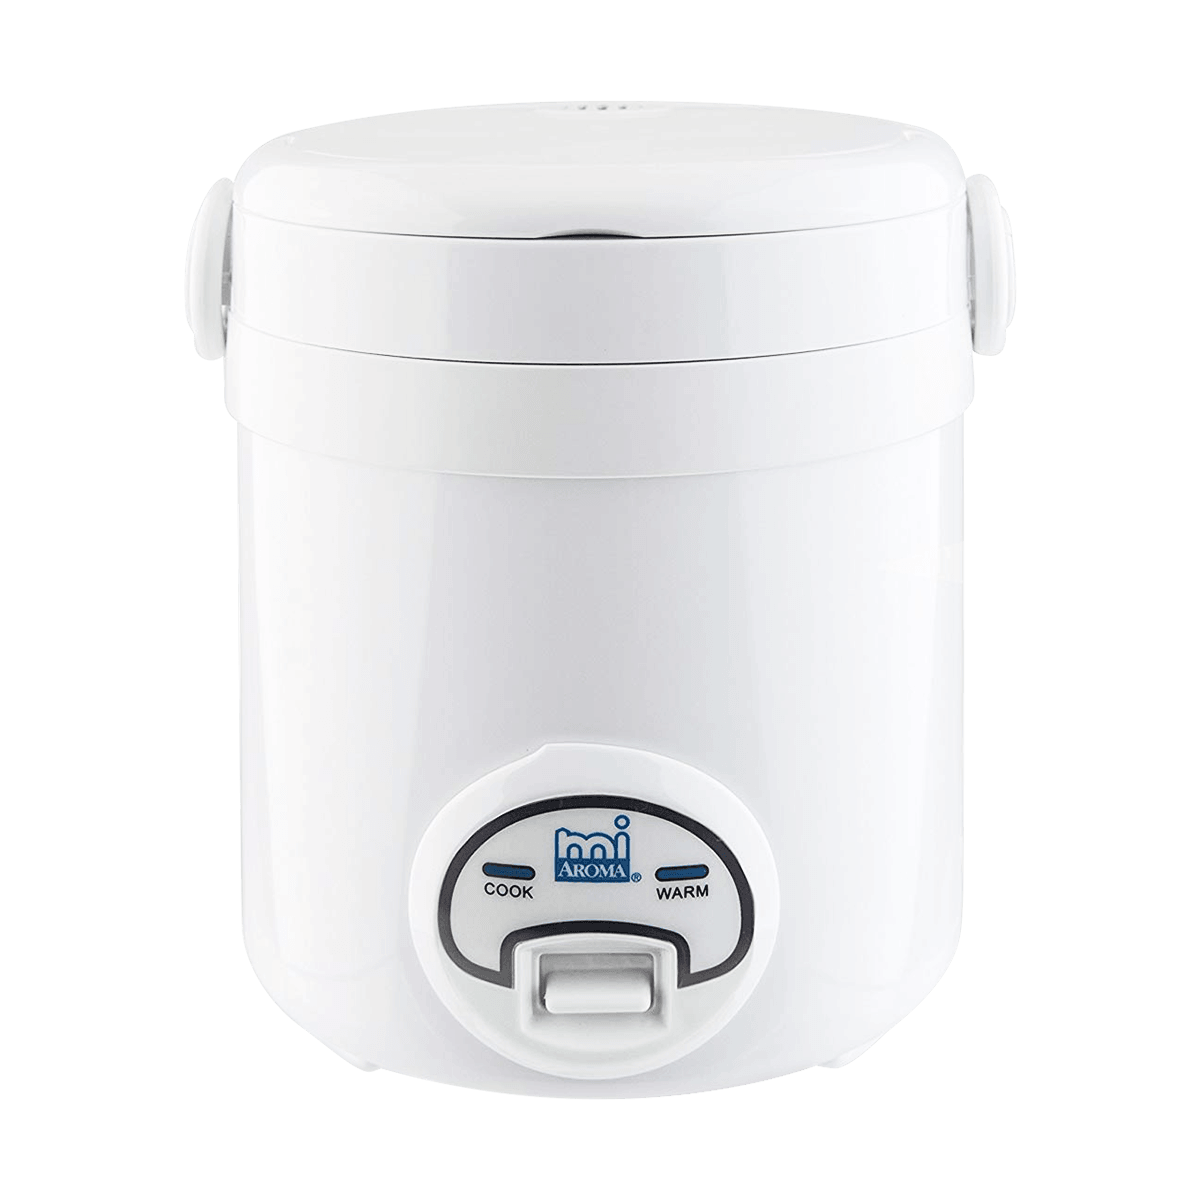 Yamibuy.com:Customer reviews:Mi Cool Touch Mini Rice Cooker, 3 Cups Cooked, MRC-903BL, Blue/White, 1 Year Mfg Warranty